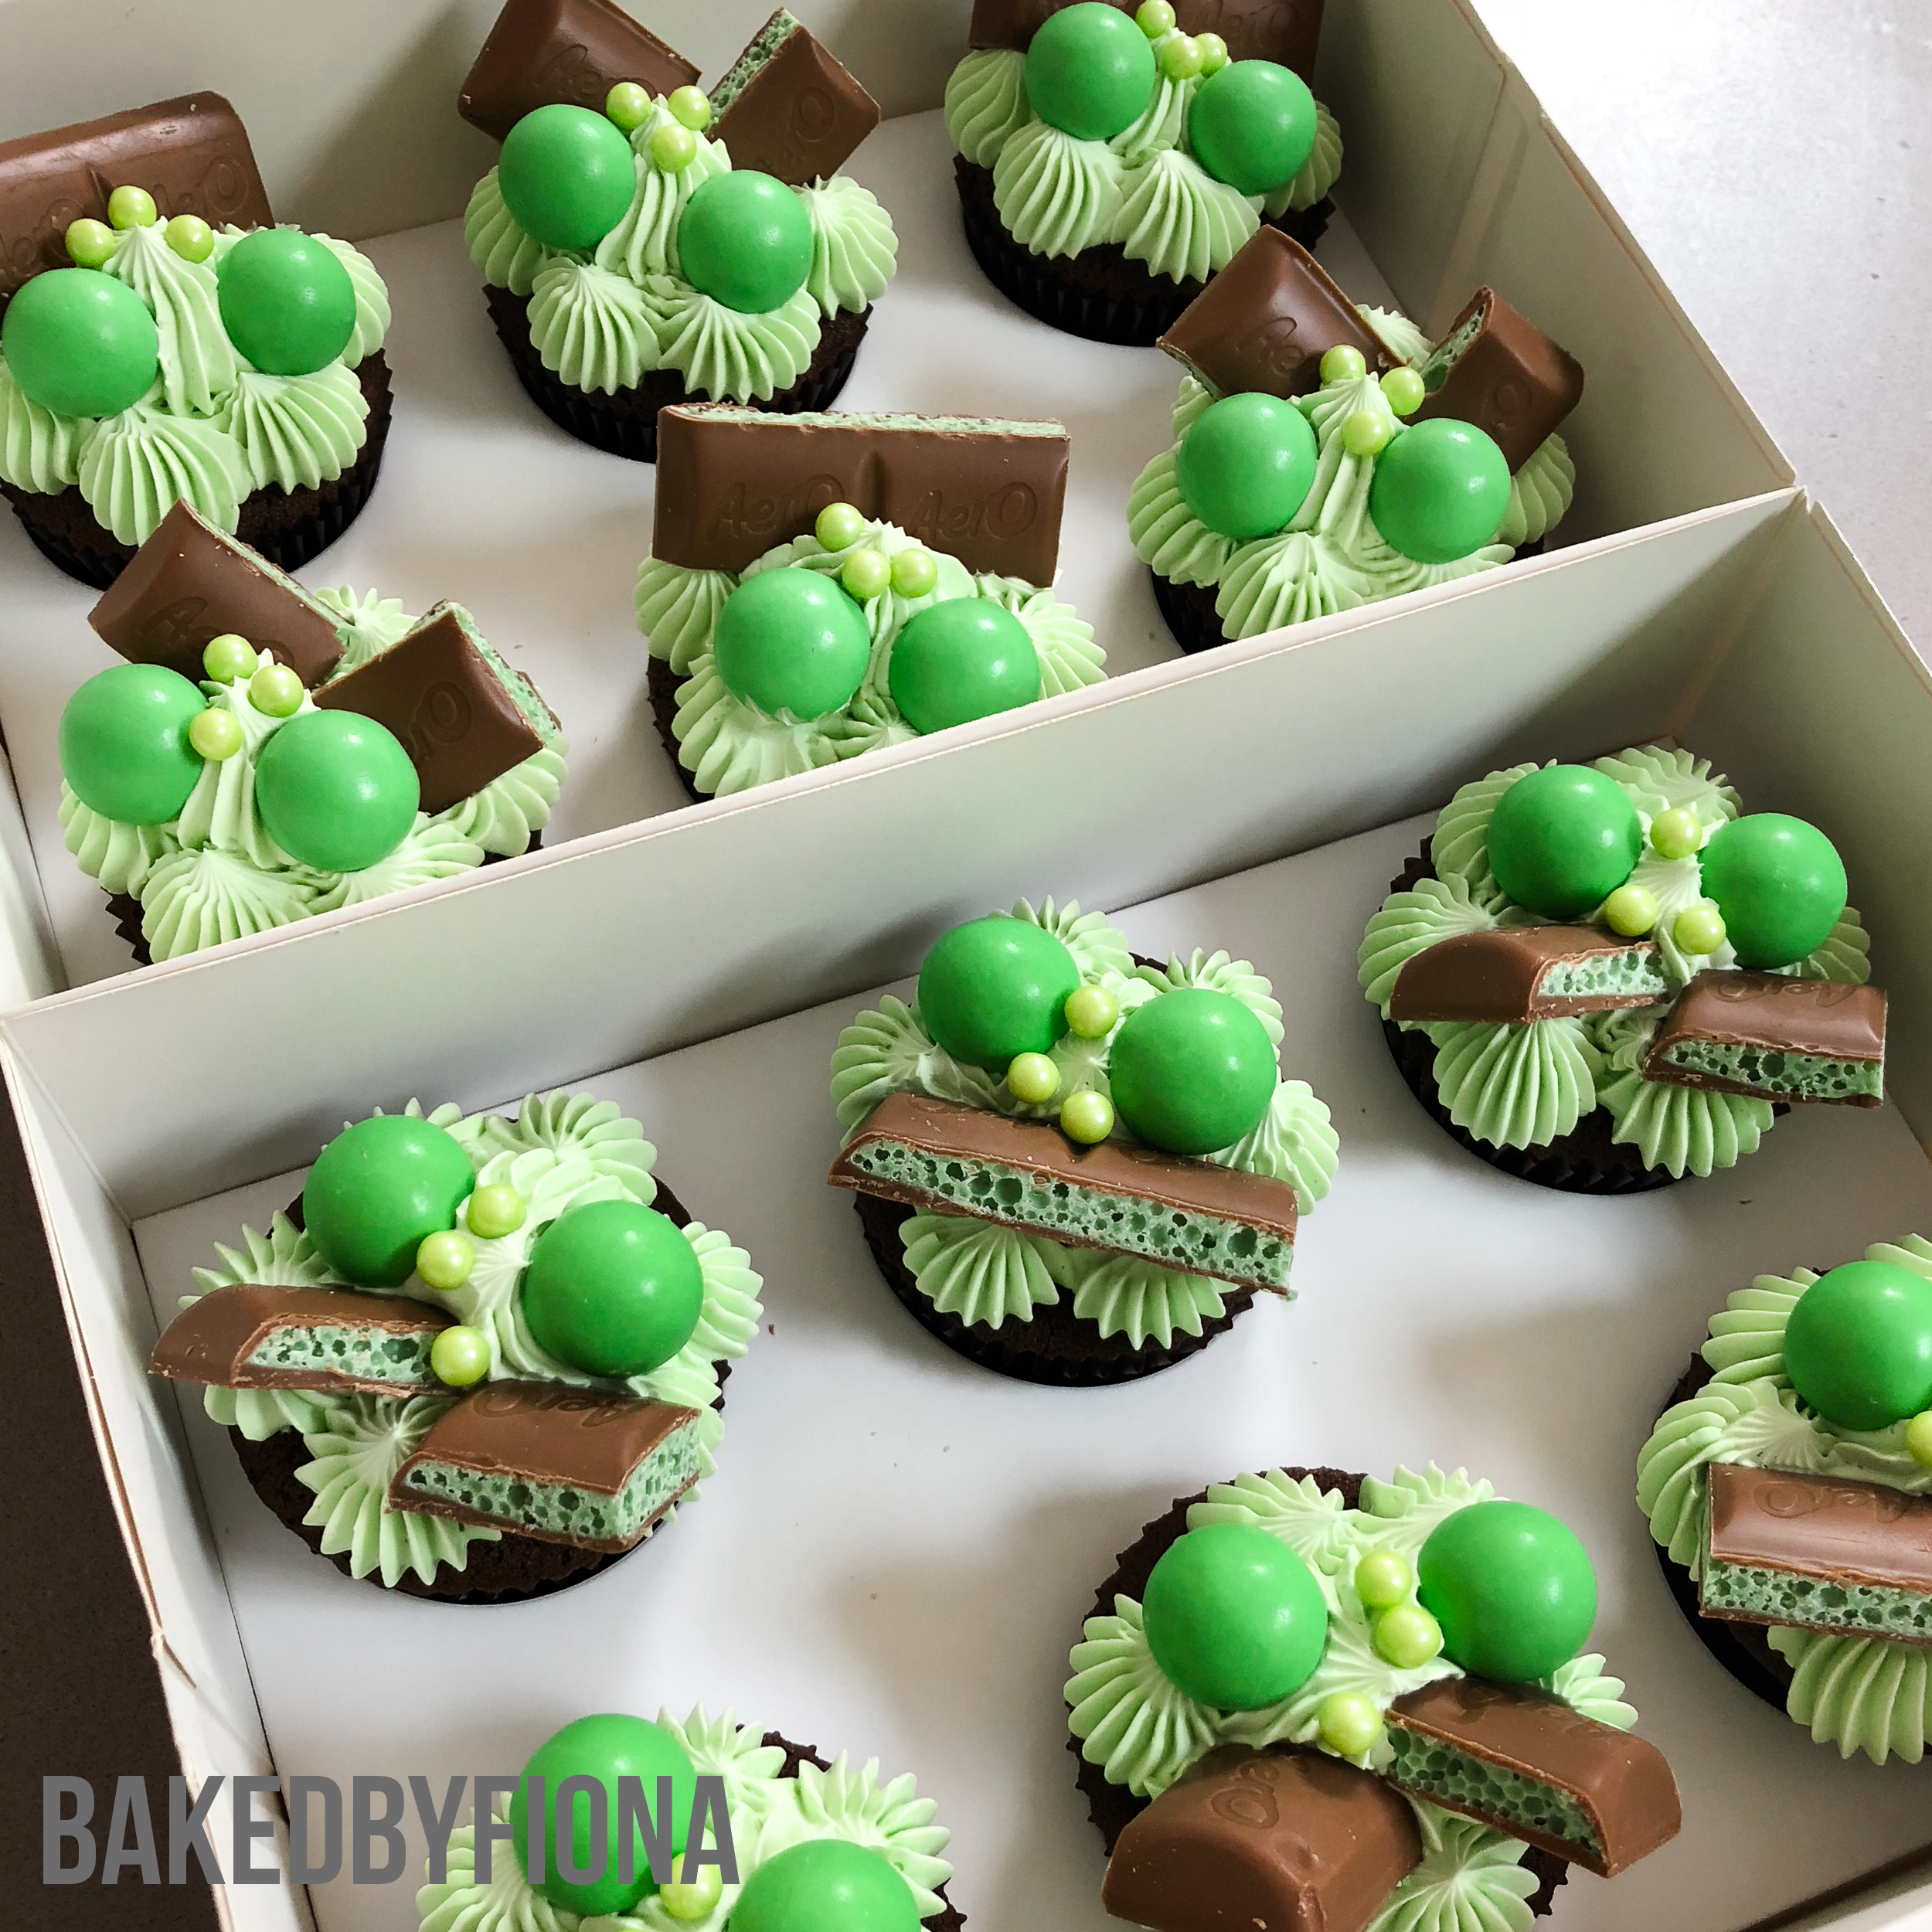 Sydney Cakes, Baked by Fiona gourmet chocolate mint cupcakes